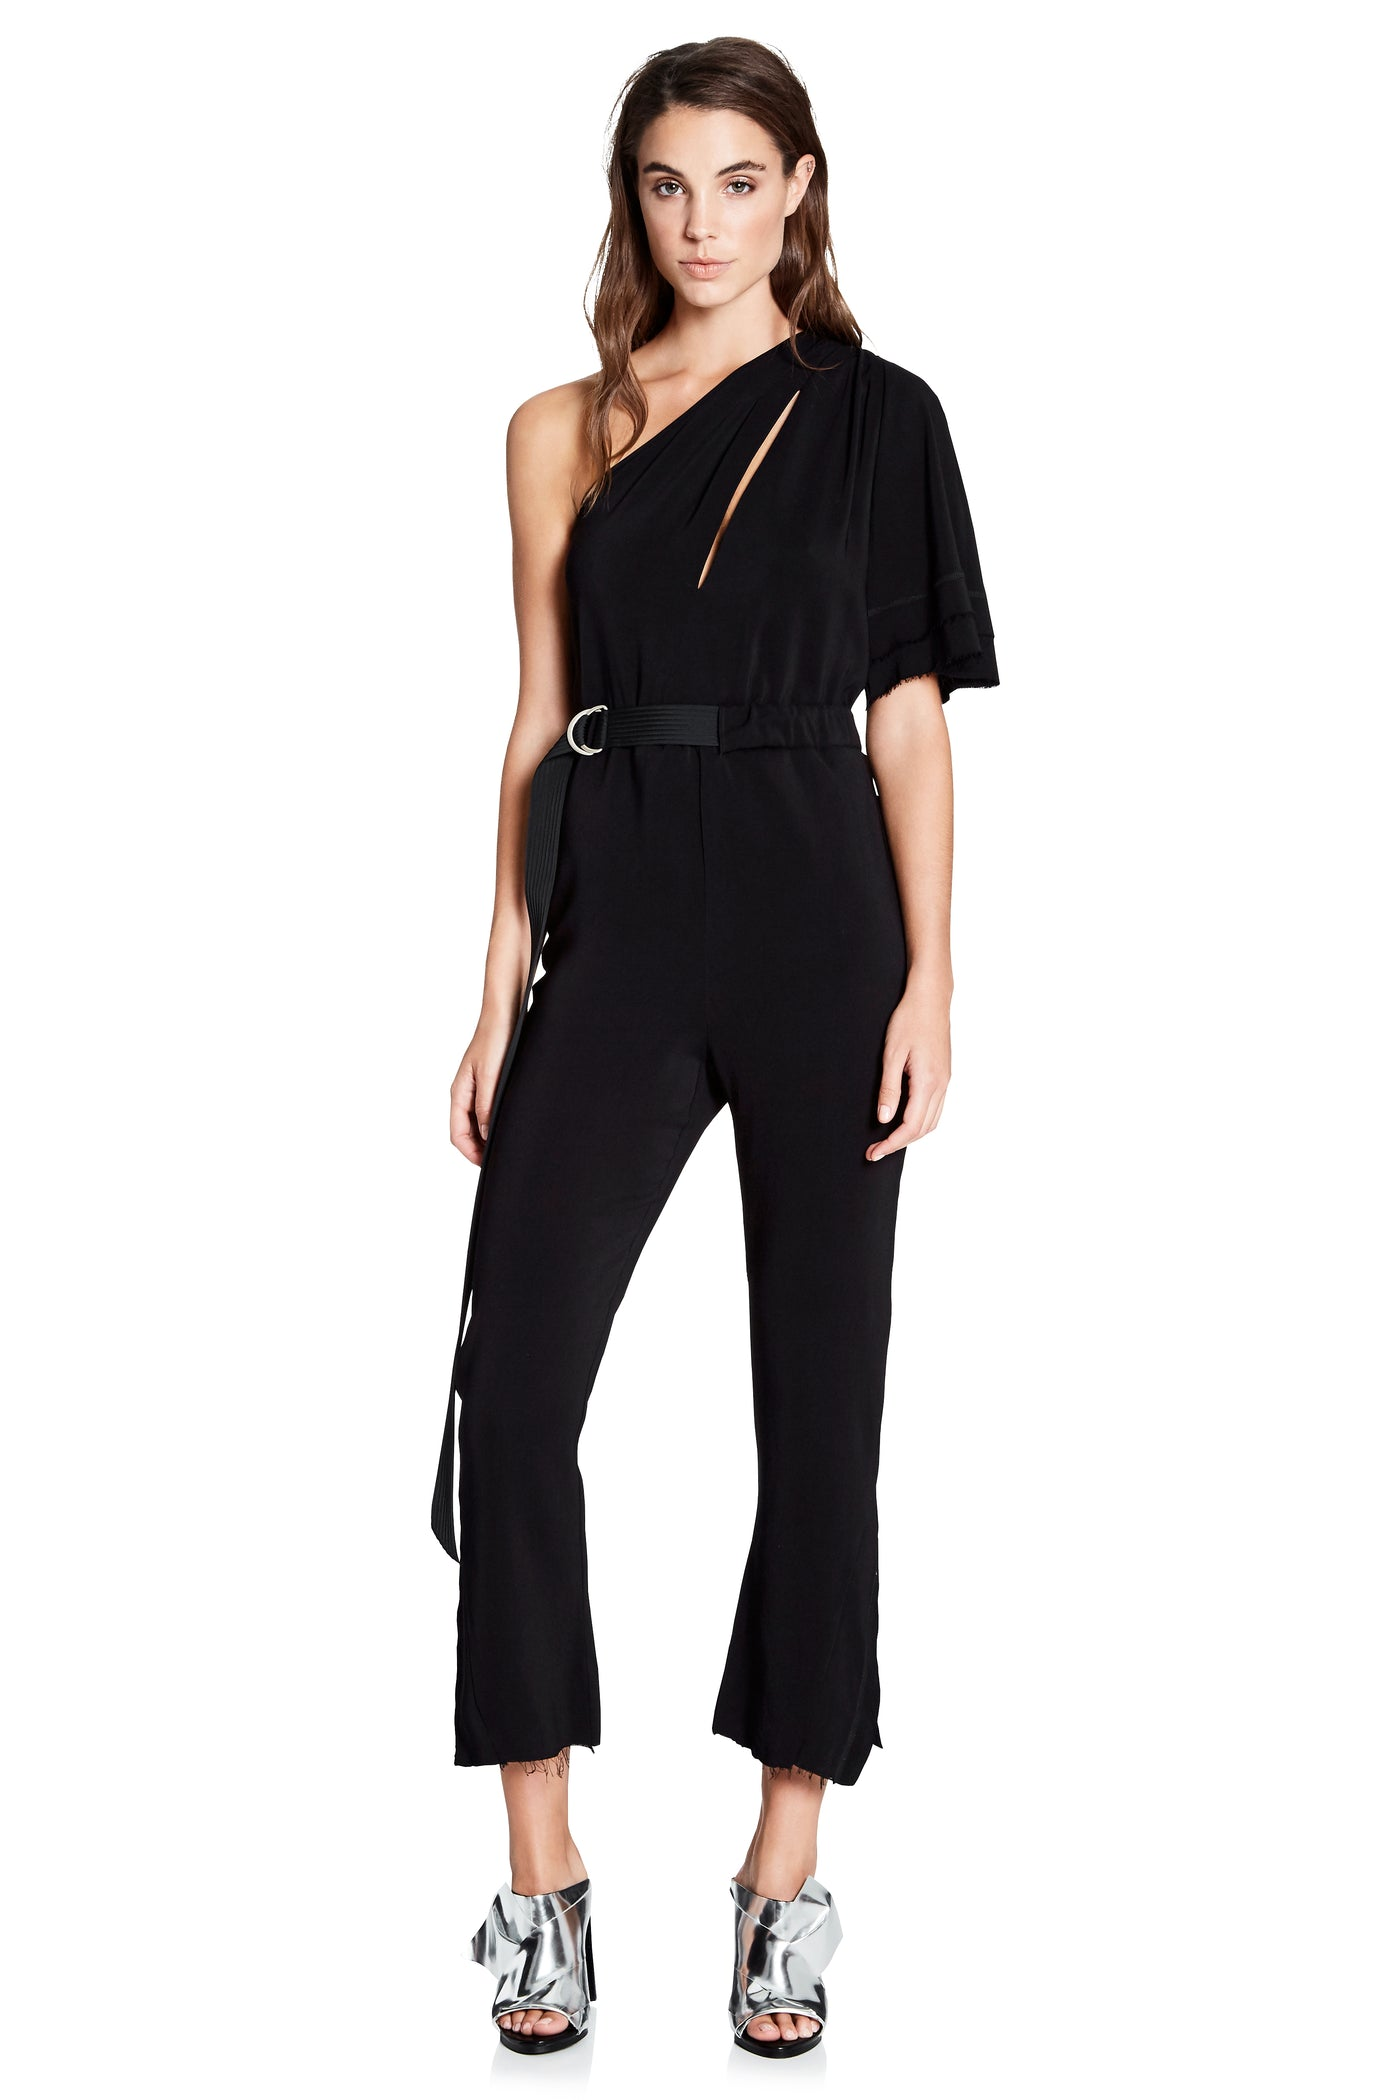 ON THE EDGE JUMPSUIT